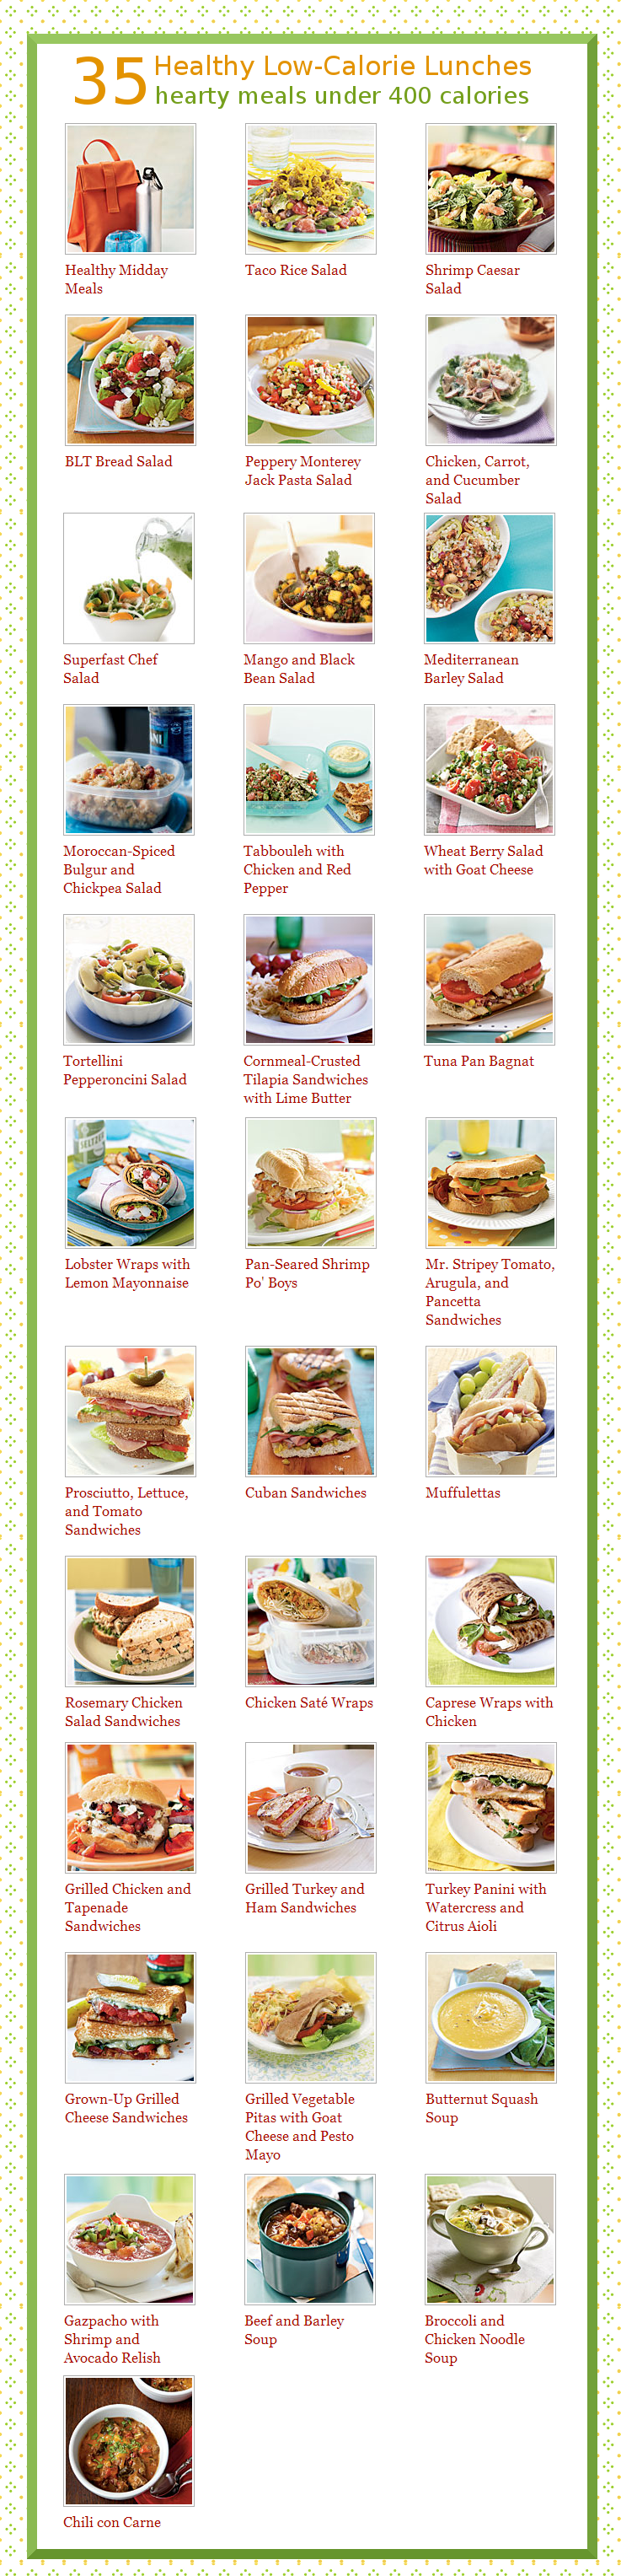 35 hearty meals under 400 calories: soups, salads and sandwiches.  From the folks at Cooking Light. #loseweight #weightloss #dietplan #ketorecipes #ketodiet #weightlosstransformation #diet #400caloriemeals 35 hearty meals under 400 calories: soups, salads and sandwiches.  From the folks at Cooking Light. #loseweight #weightloss #dietplan #ketorecipes #ketodiet #weightlosstransformation #diet #300caloriemeals